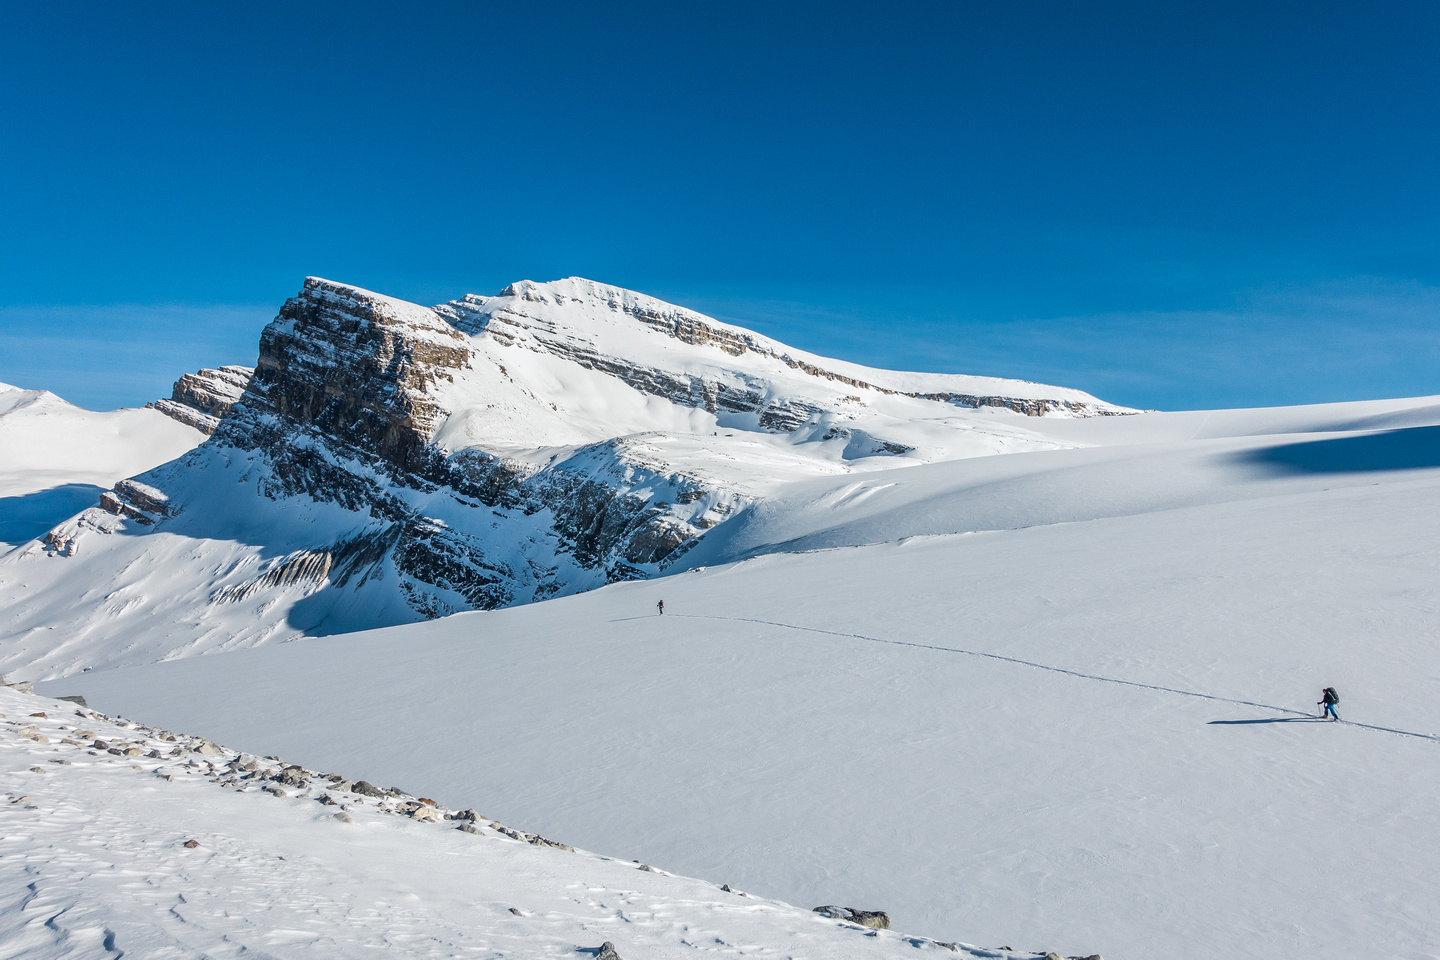 Skiing back down the Peyto Glacier in lengthening shadows.